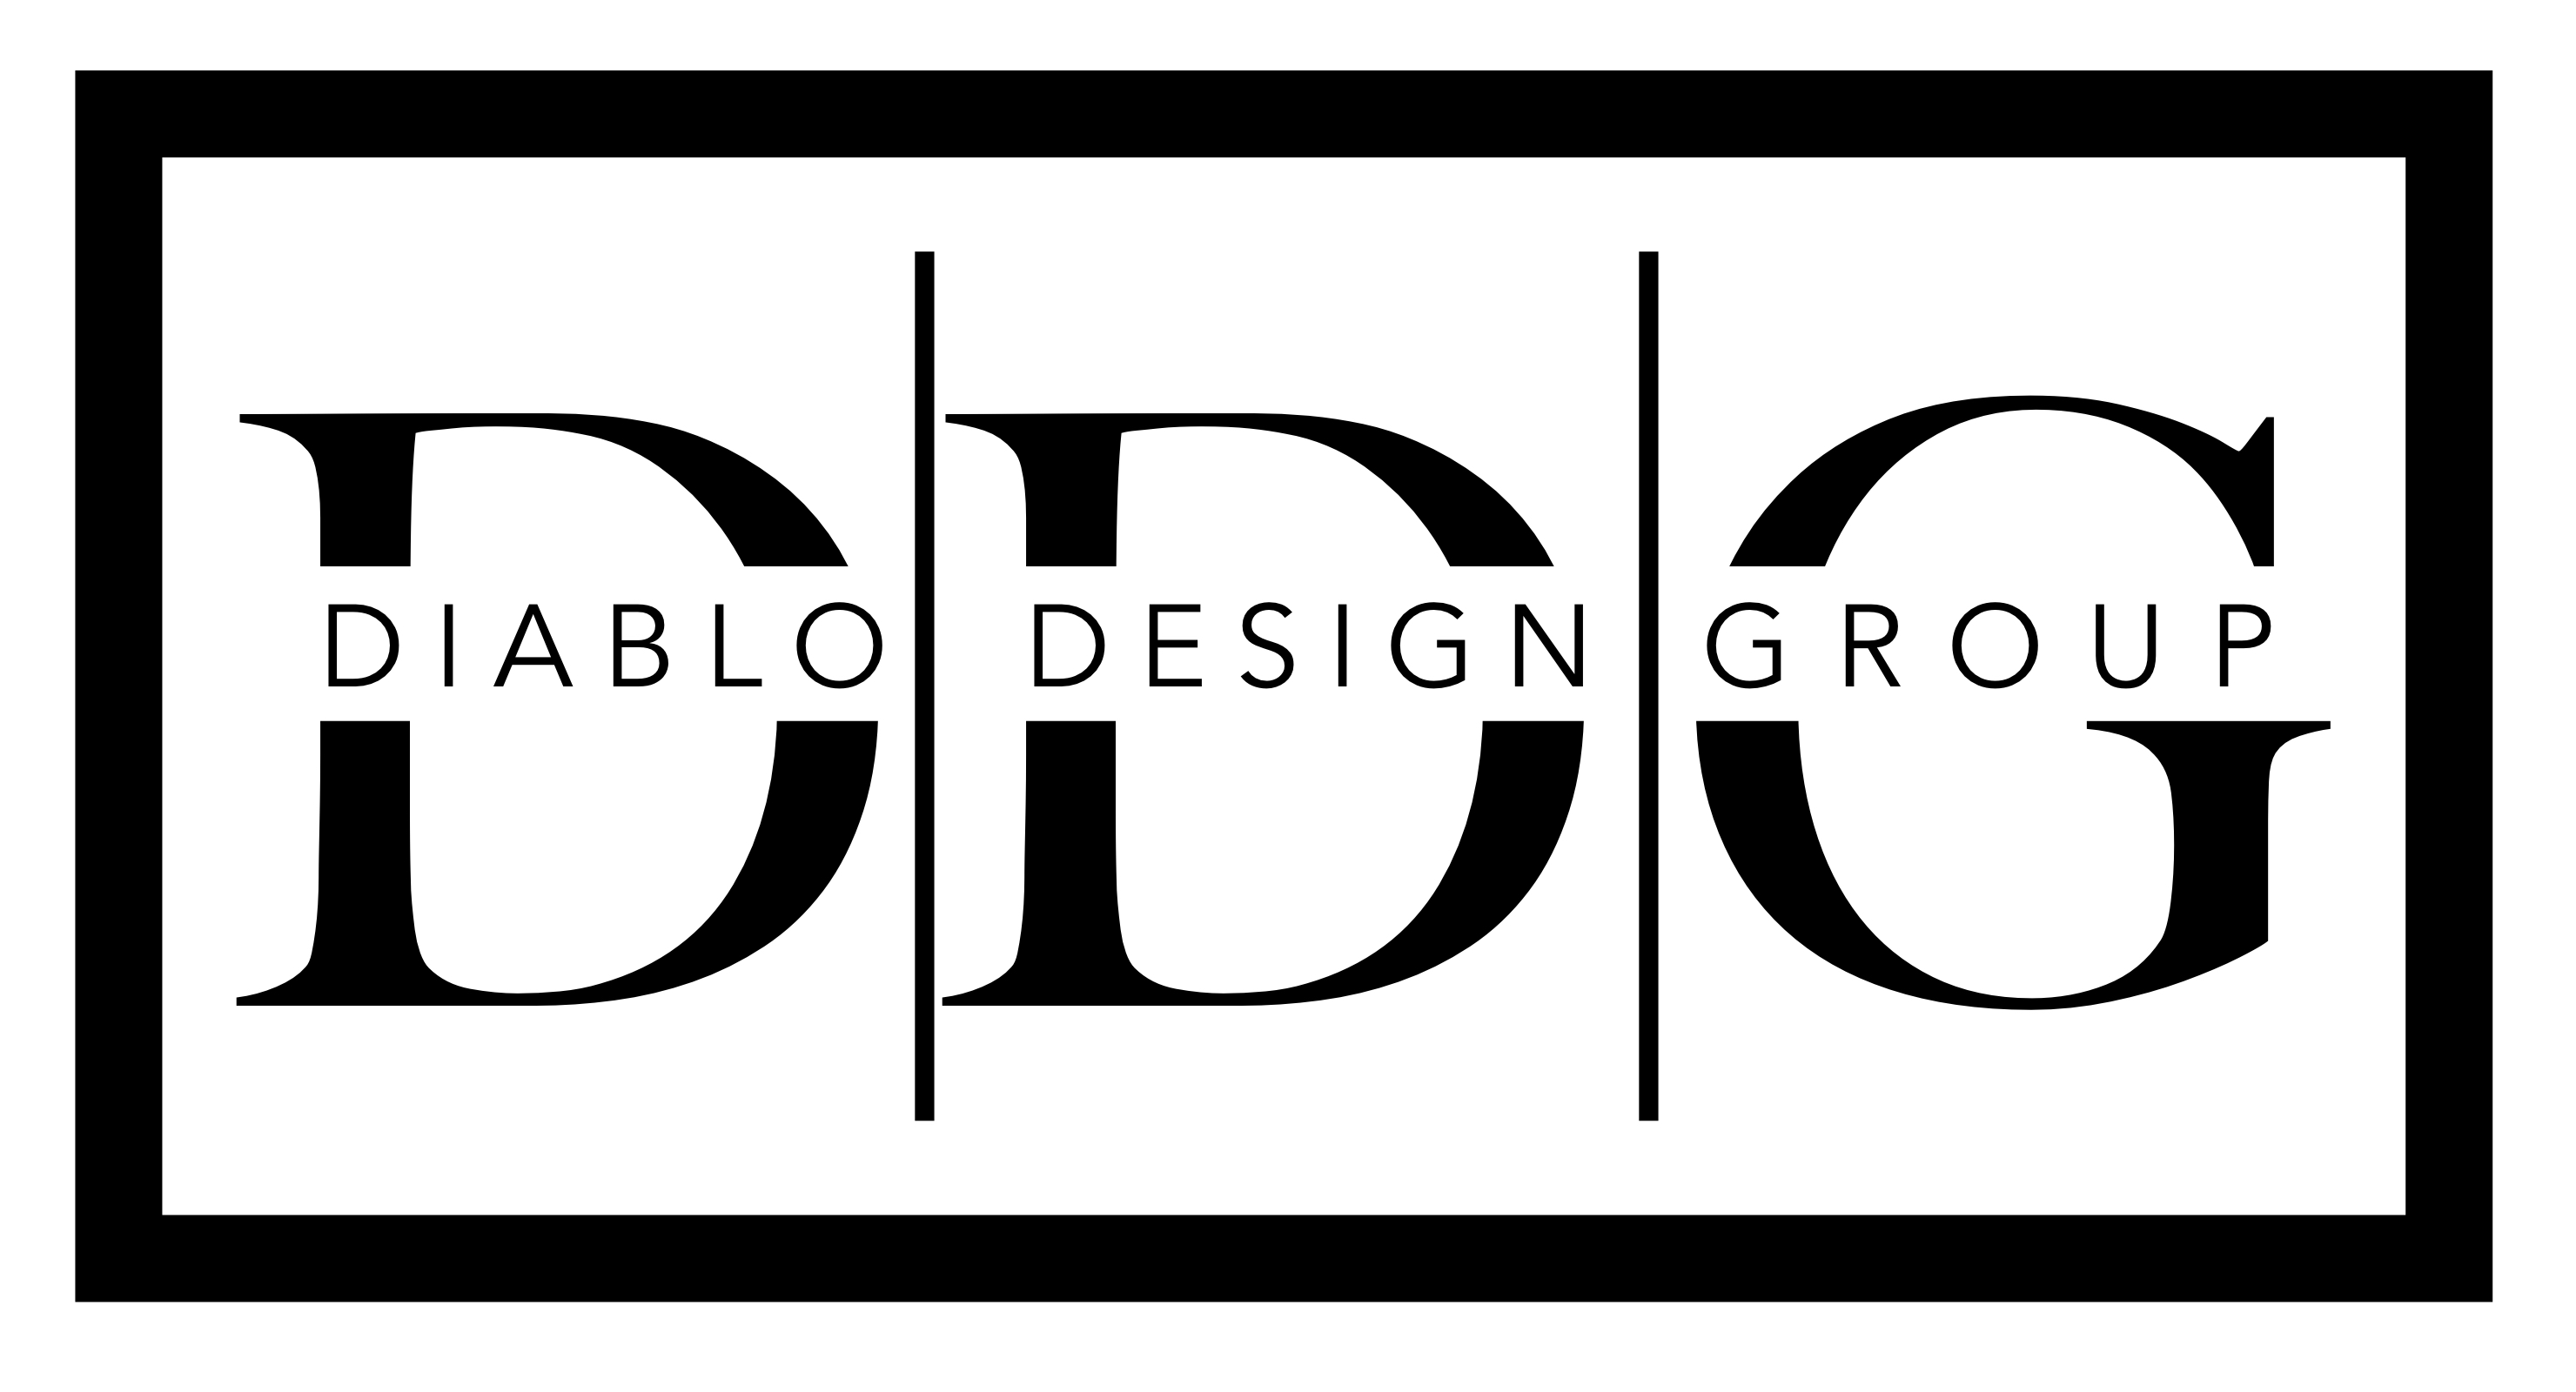 Diablo Design Group Logo